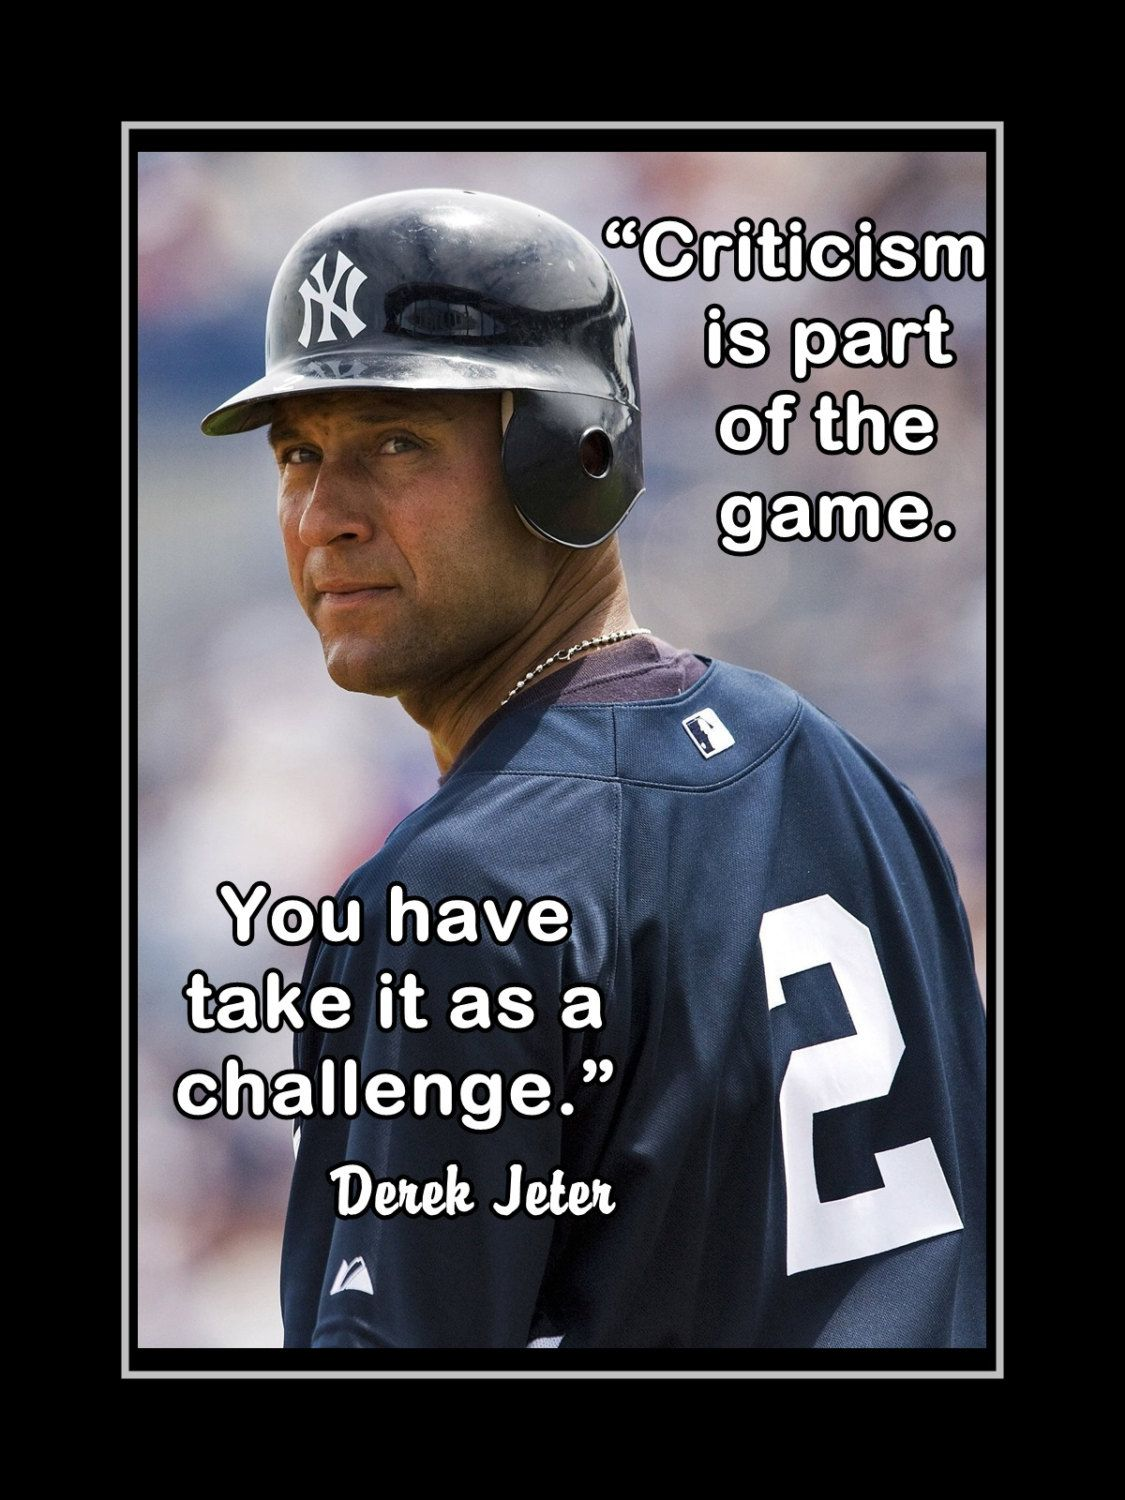 Derek Jeter Poster Ny Yankee Fan Photo Quote Wall Art Print 8x11 Criticism Is Part Of The Game Baseball Inspirational Quotes Derek Jeter Derek Jeter Quotes